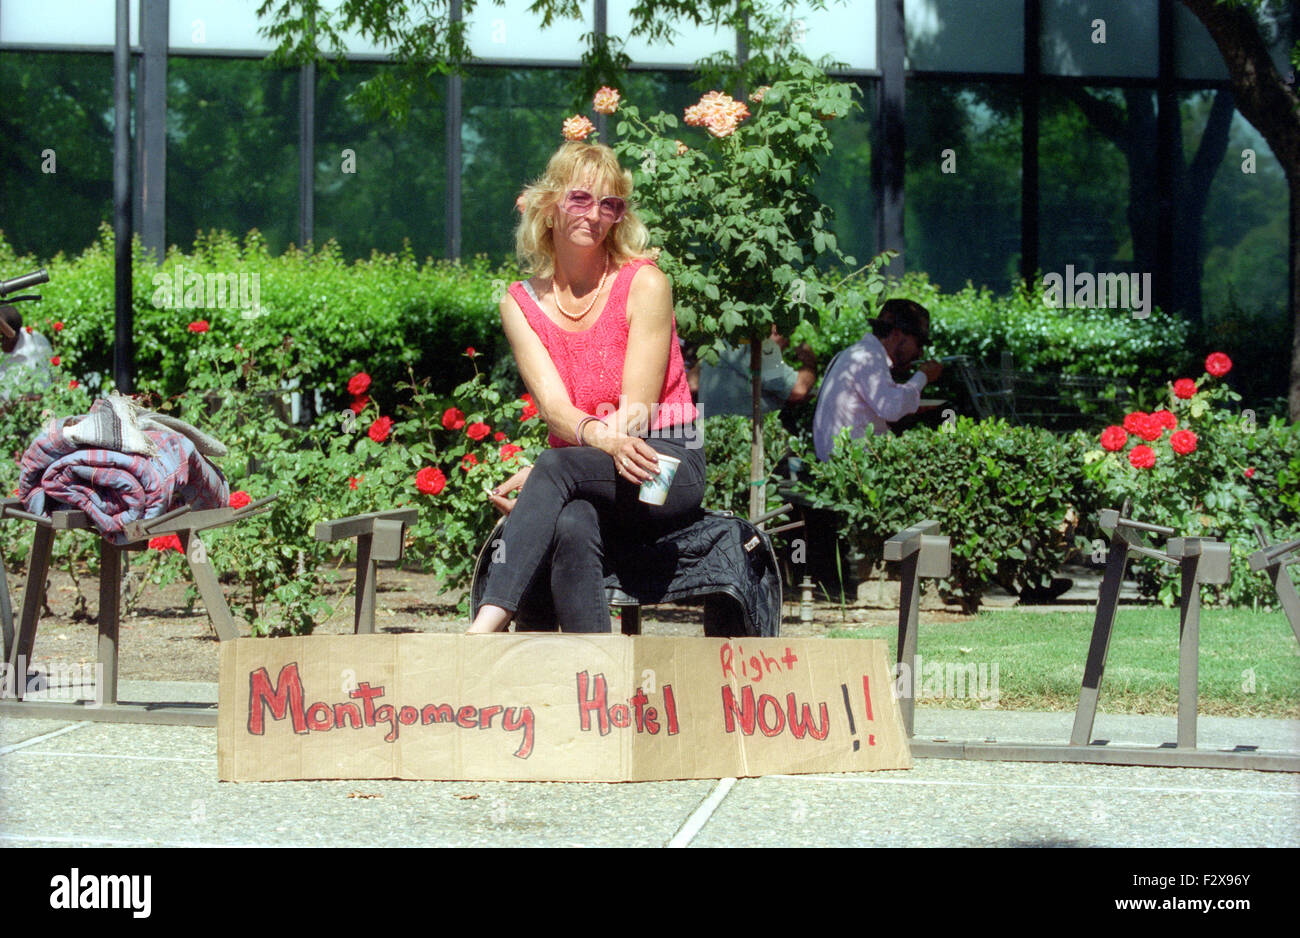 woman sitting next to sign reading, Montgomery Hotel Now!  San Jose homeless, low income residents, and activists, - Stock Image